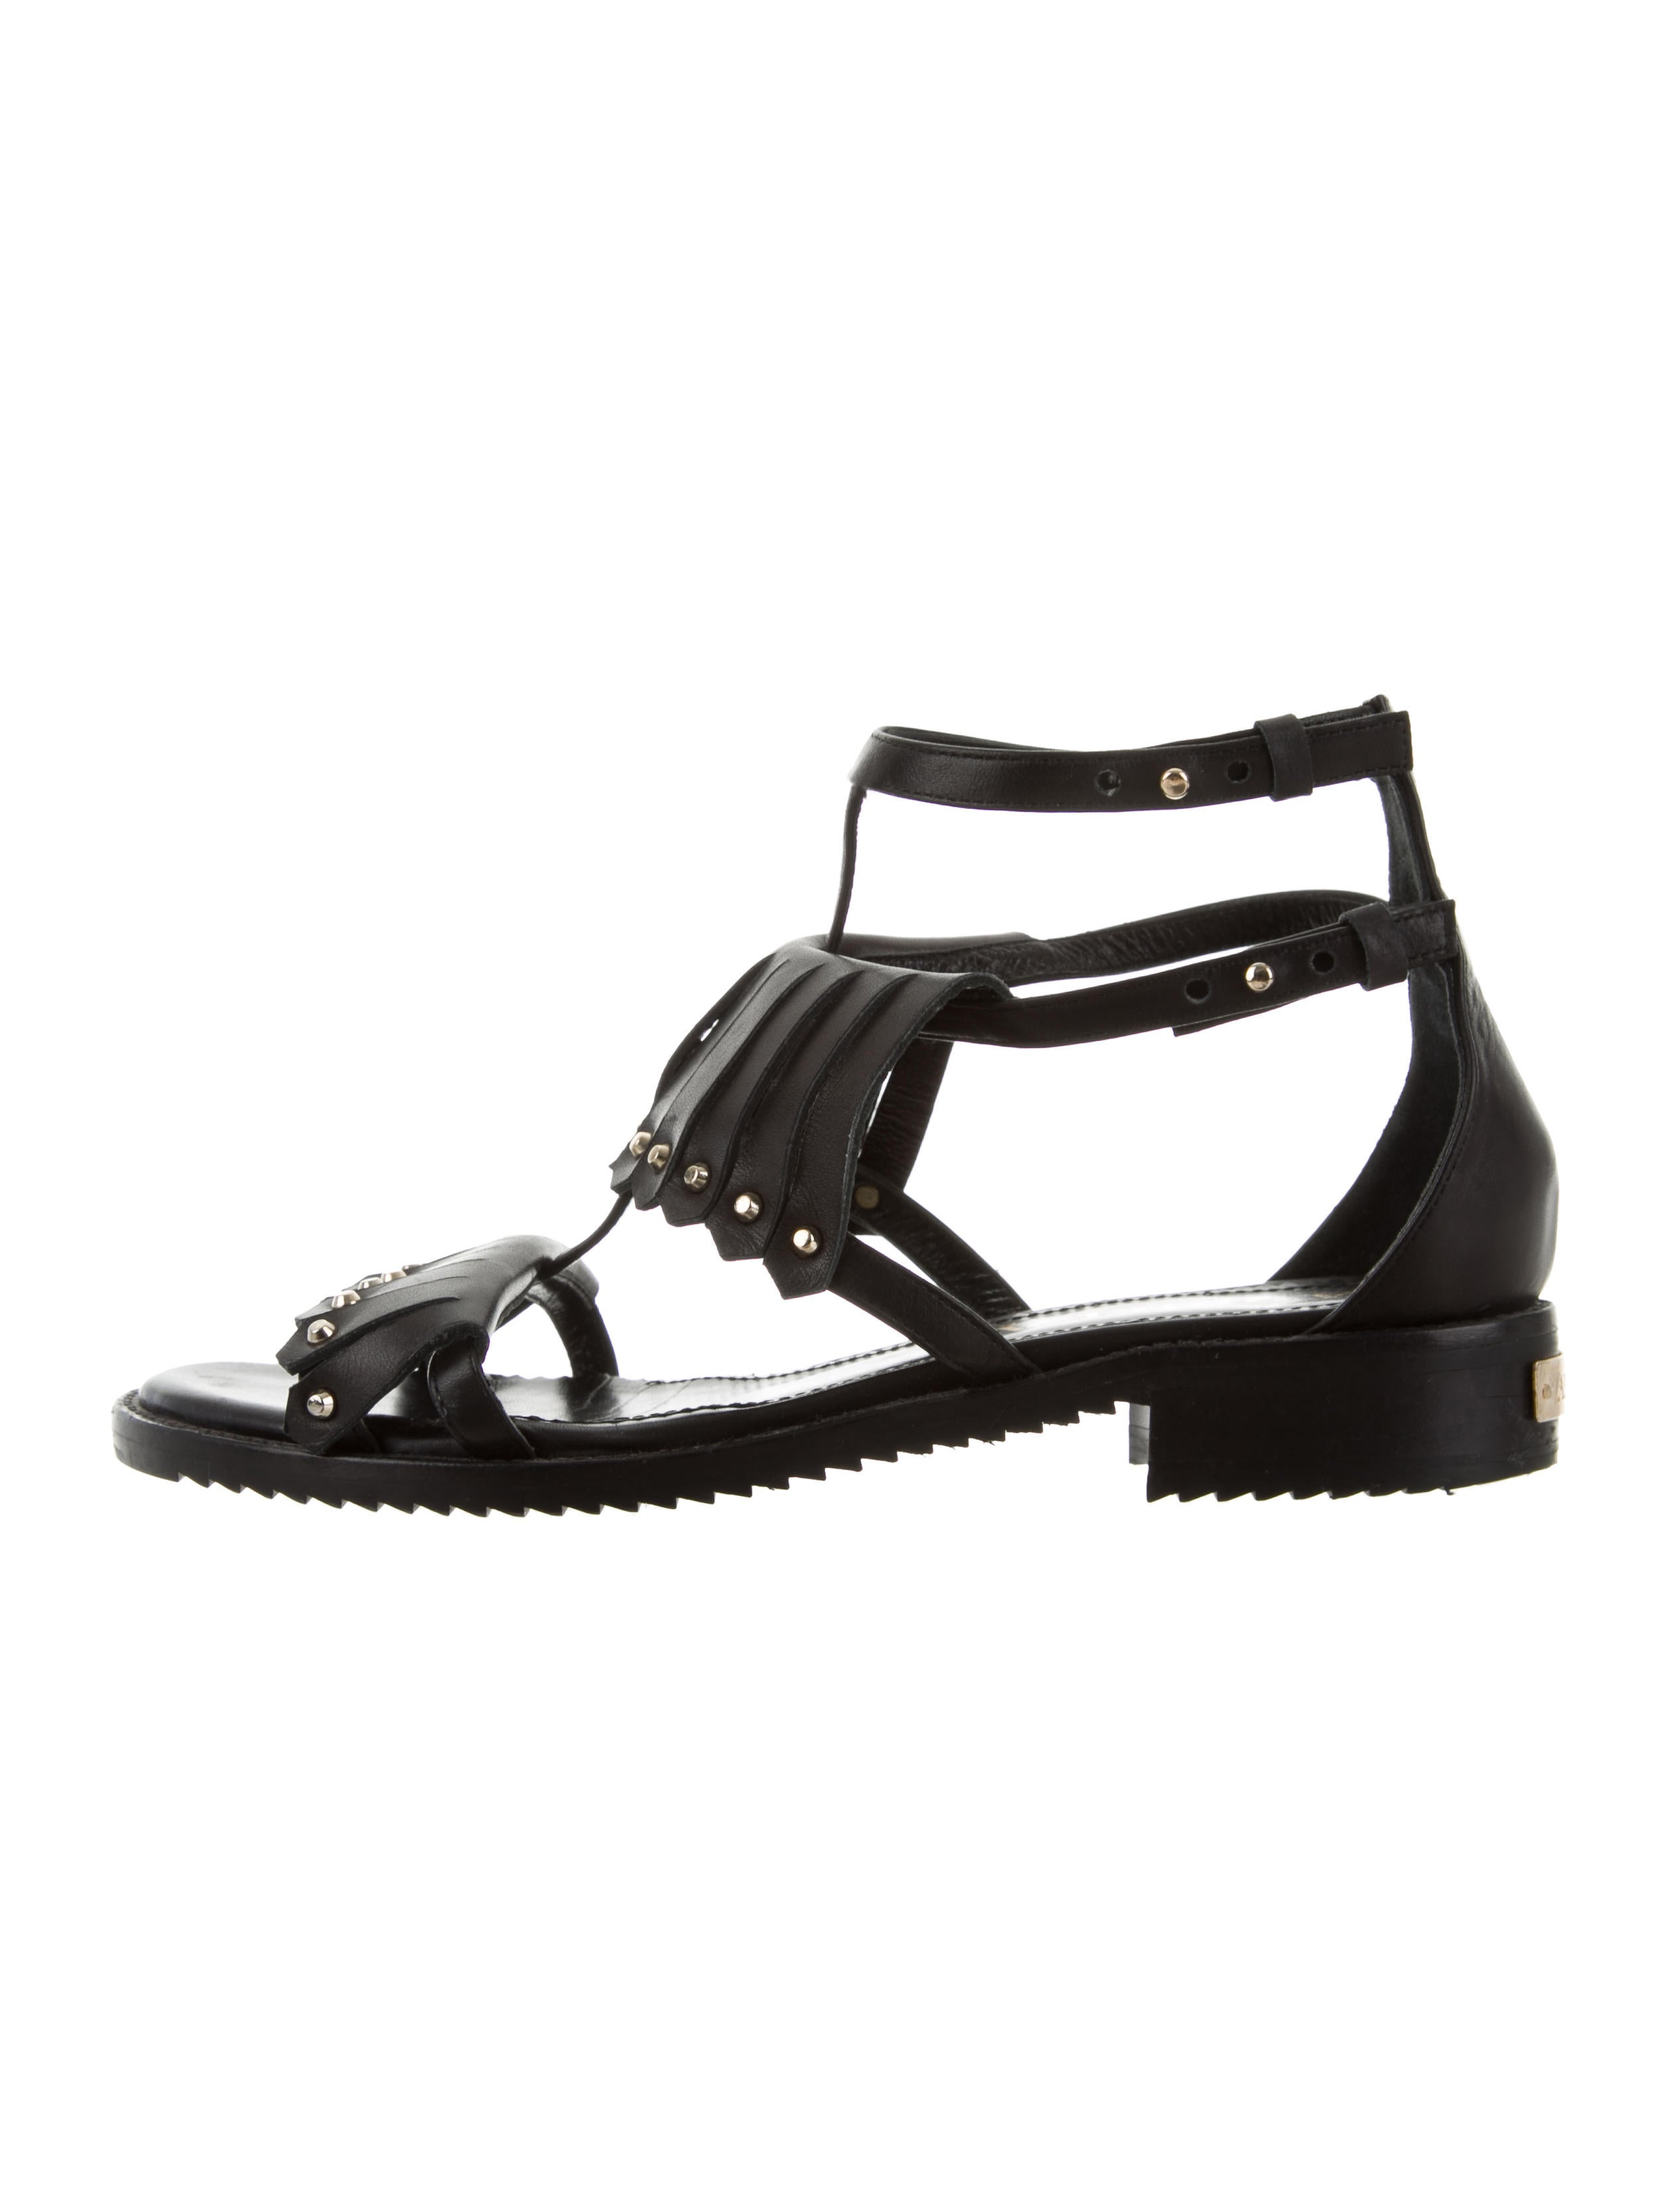 Aperlai Leather Studded Sandals for nice for sale high quality cheap price original footlocker pictures sale online great deals sale online wFcL8eJM